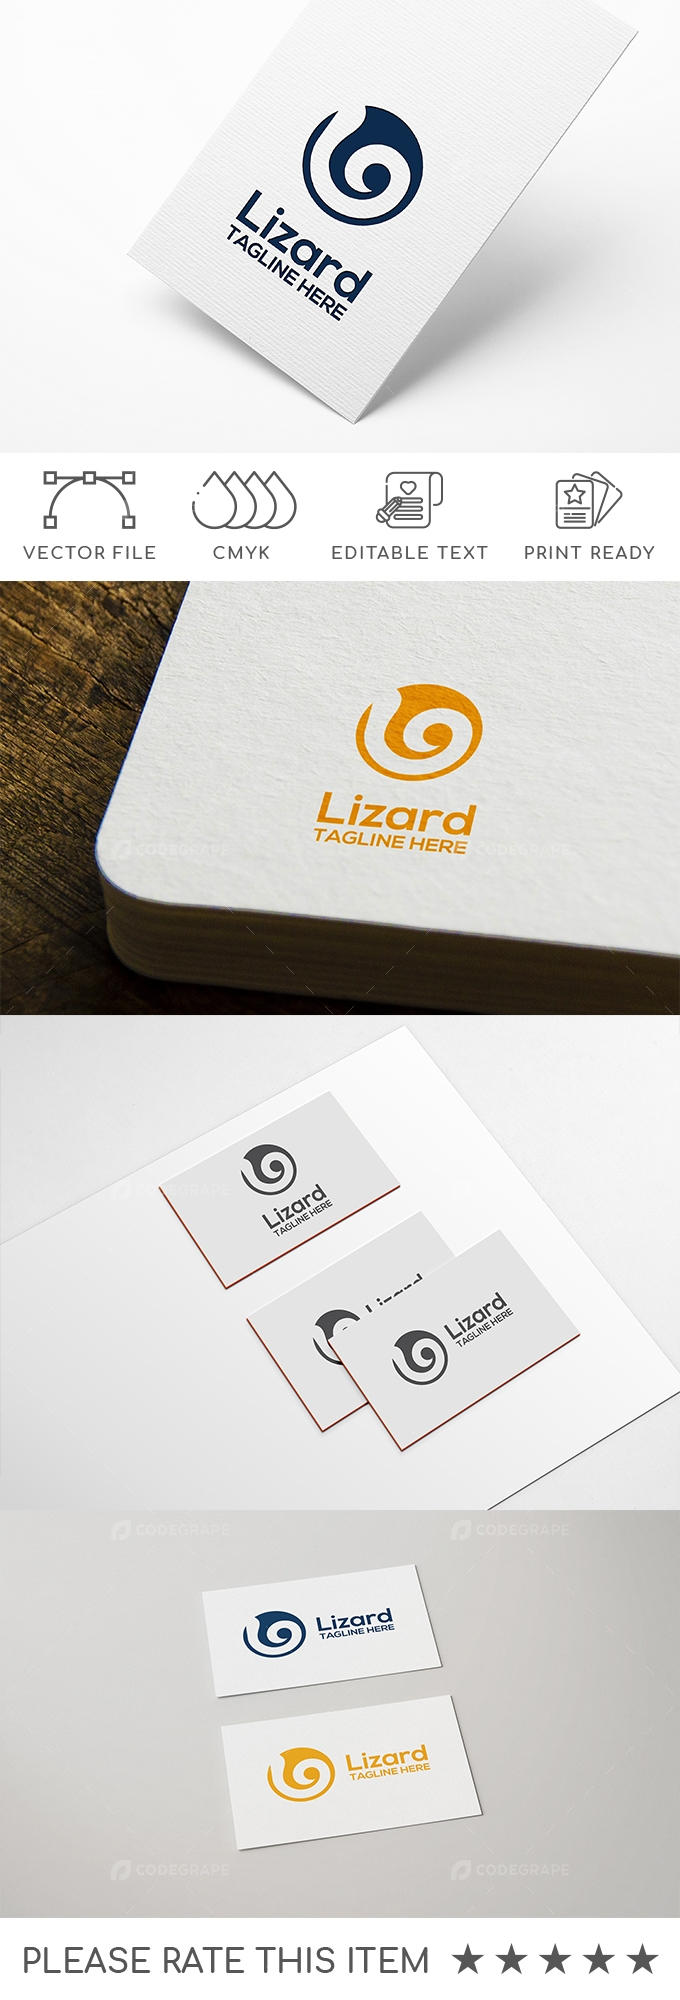 Lizard Logo Design